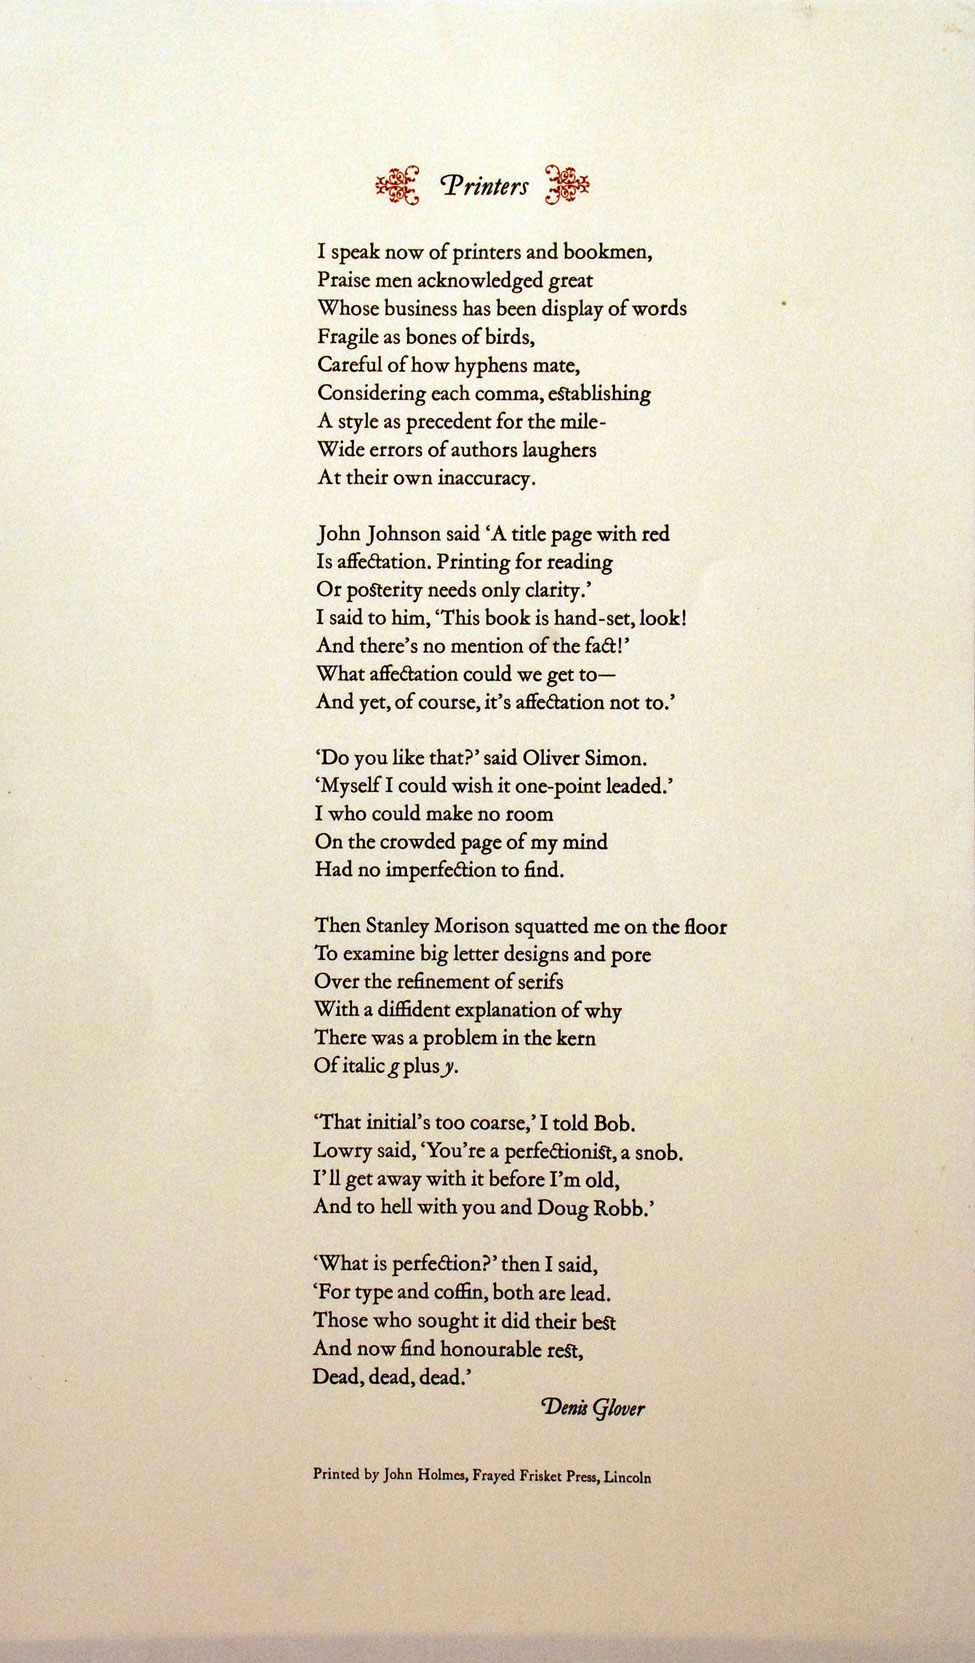 The Poem 'Printers' by Denis Glover, printed by John Holmes, Frayed Frisket Press, Lincoln, New Zealand.